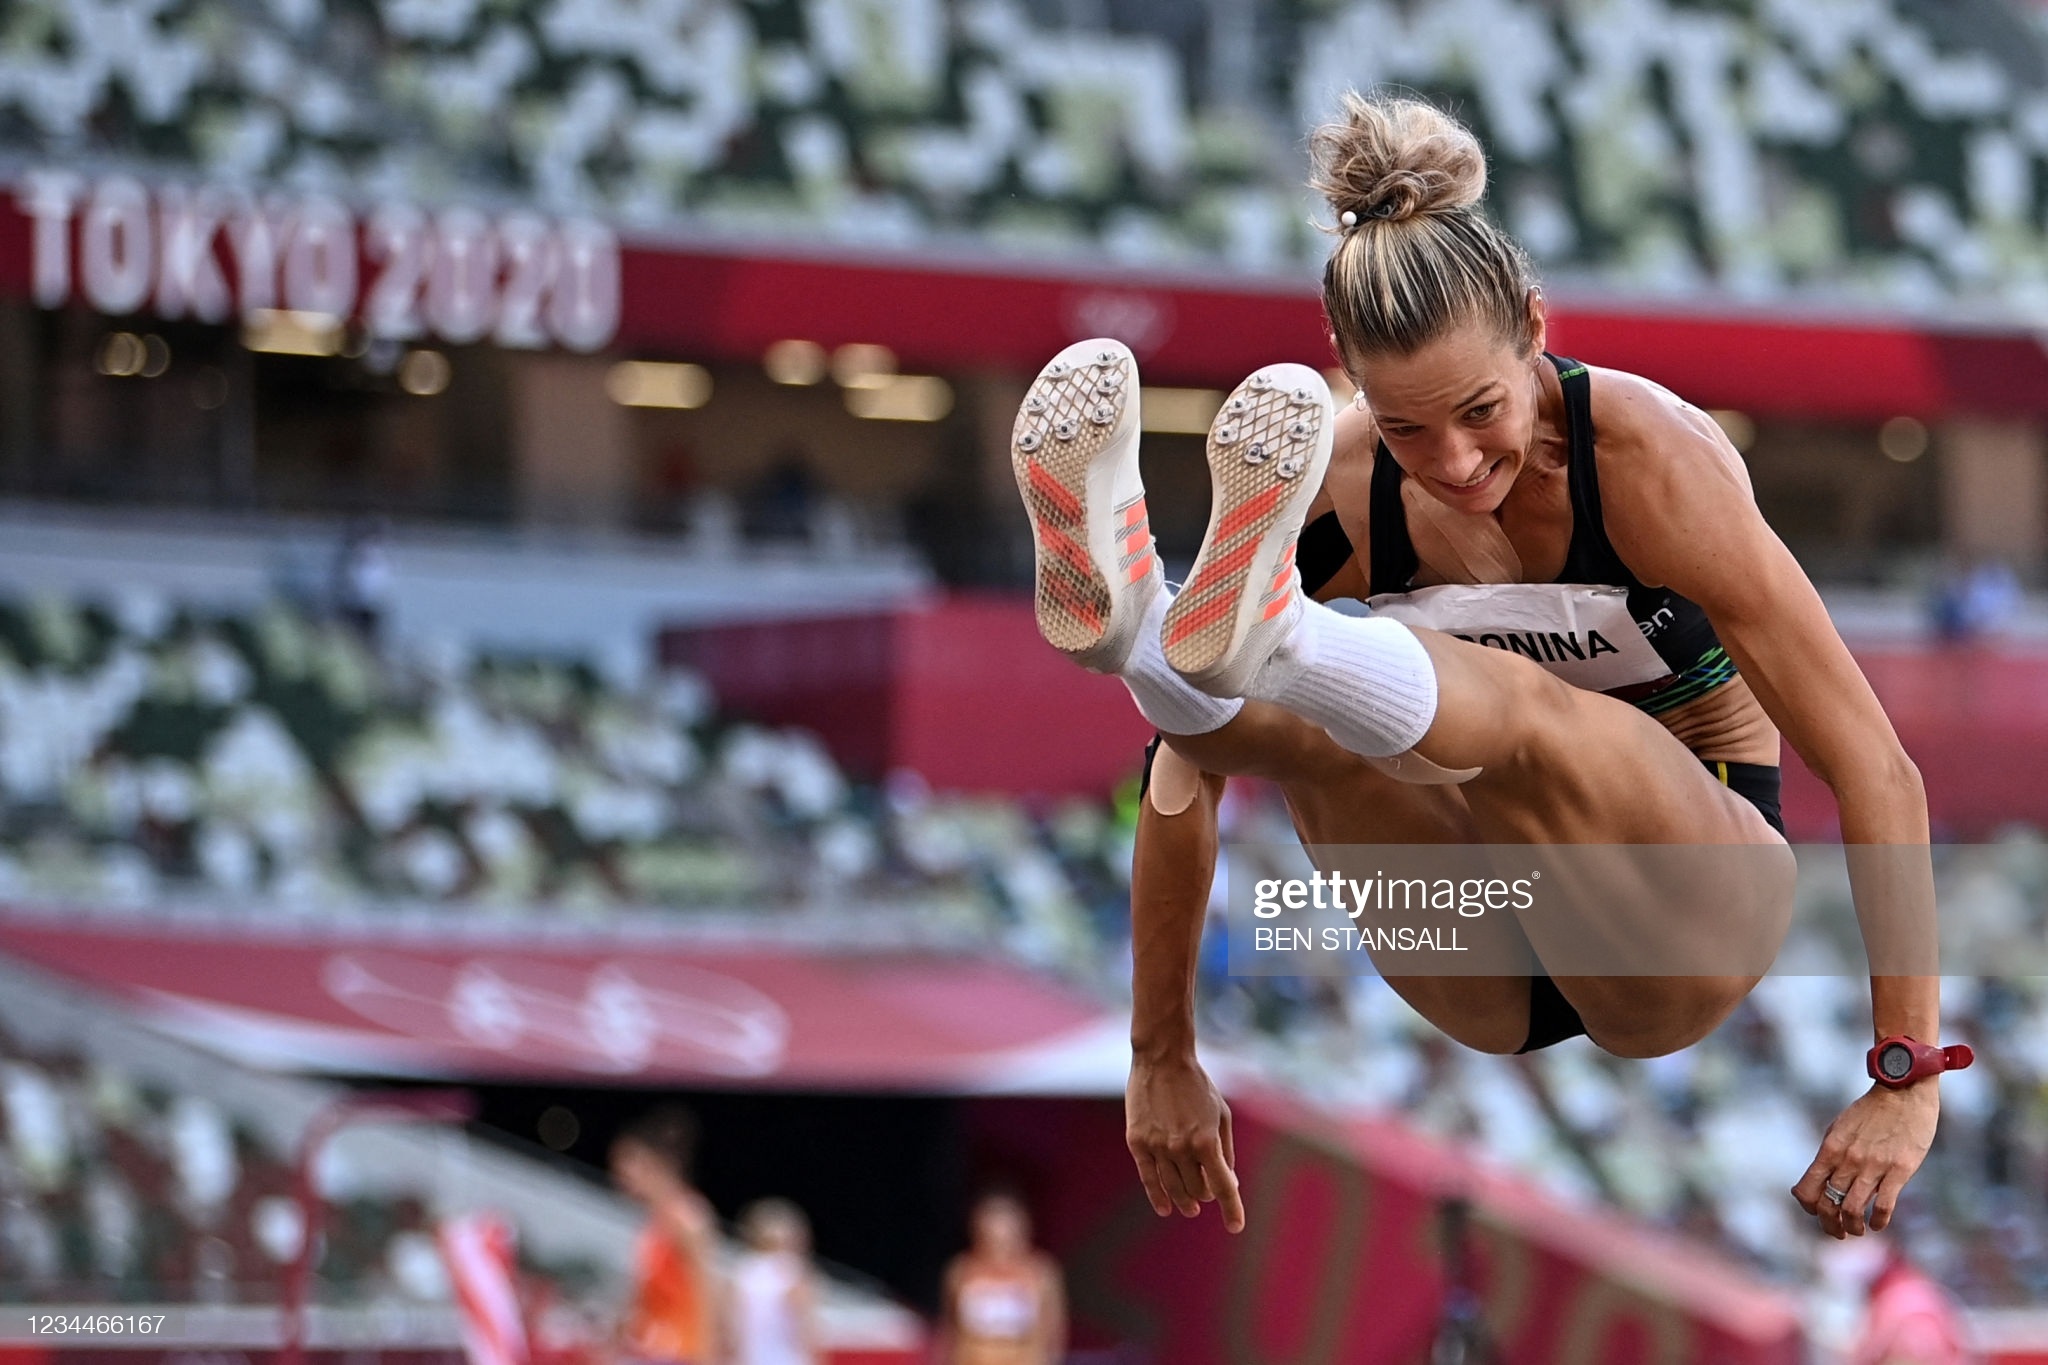 gettyimages-1234466167-2048x2048